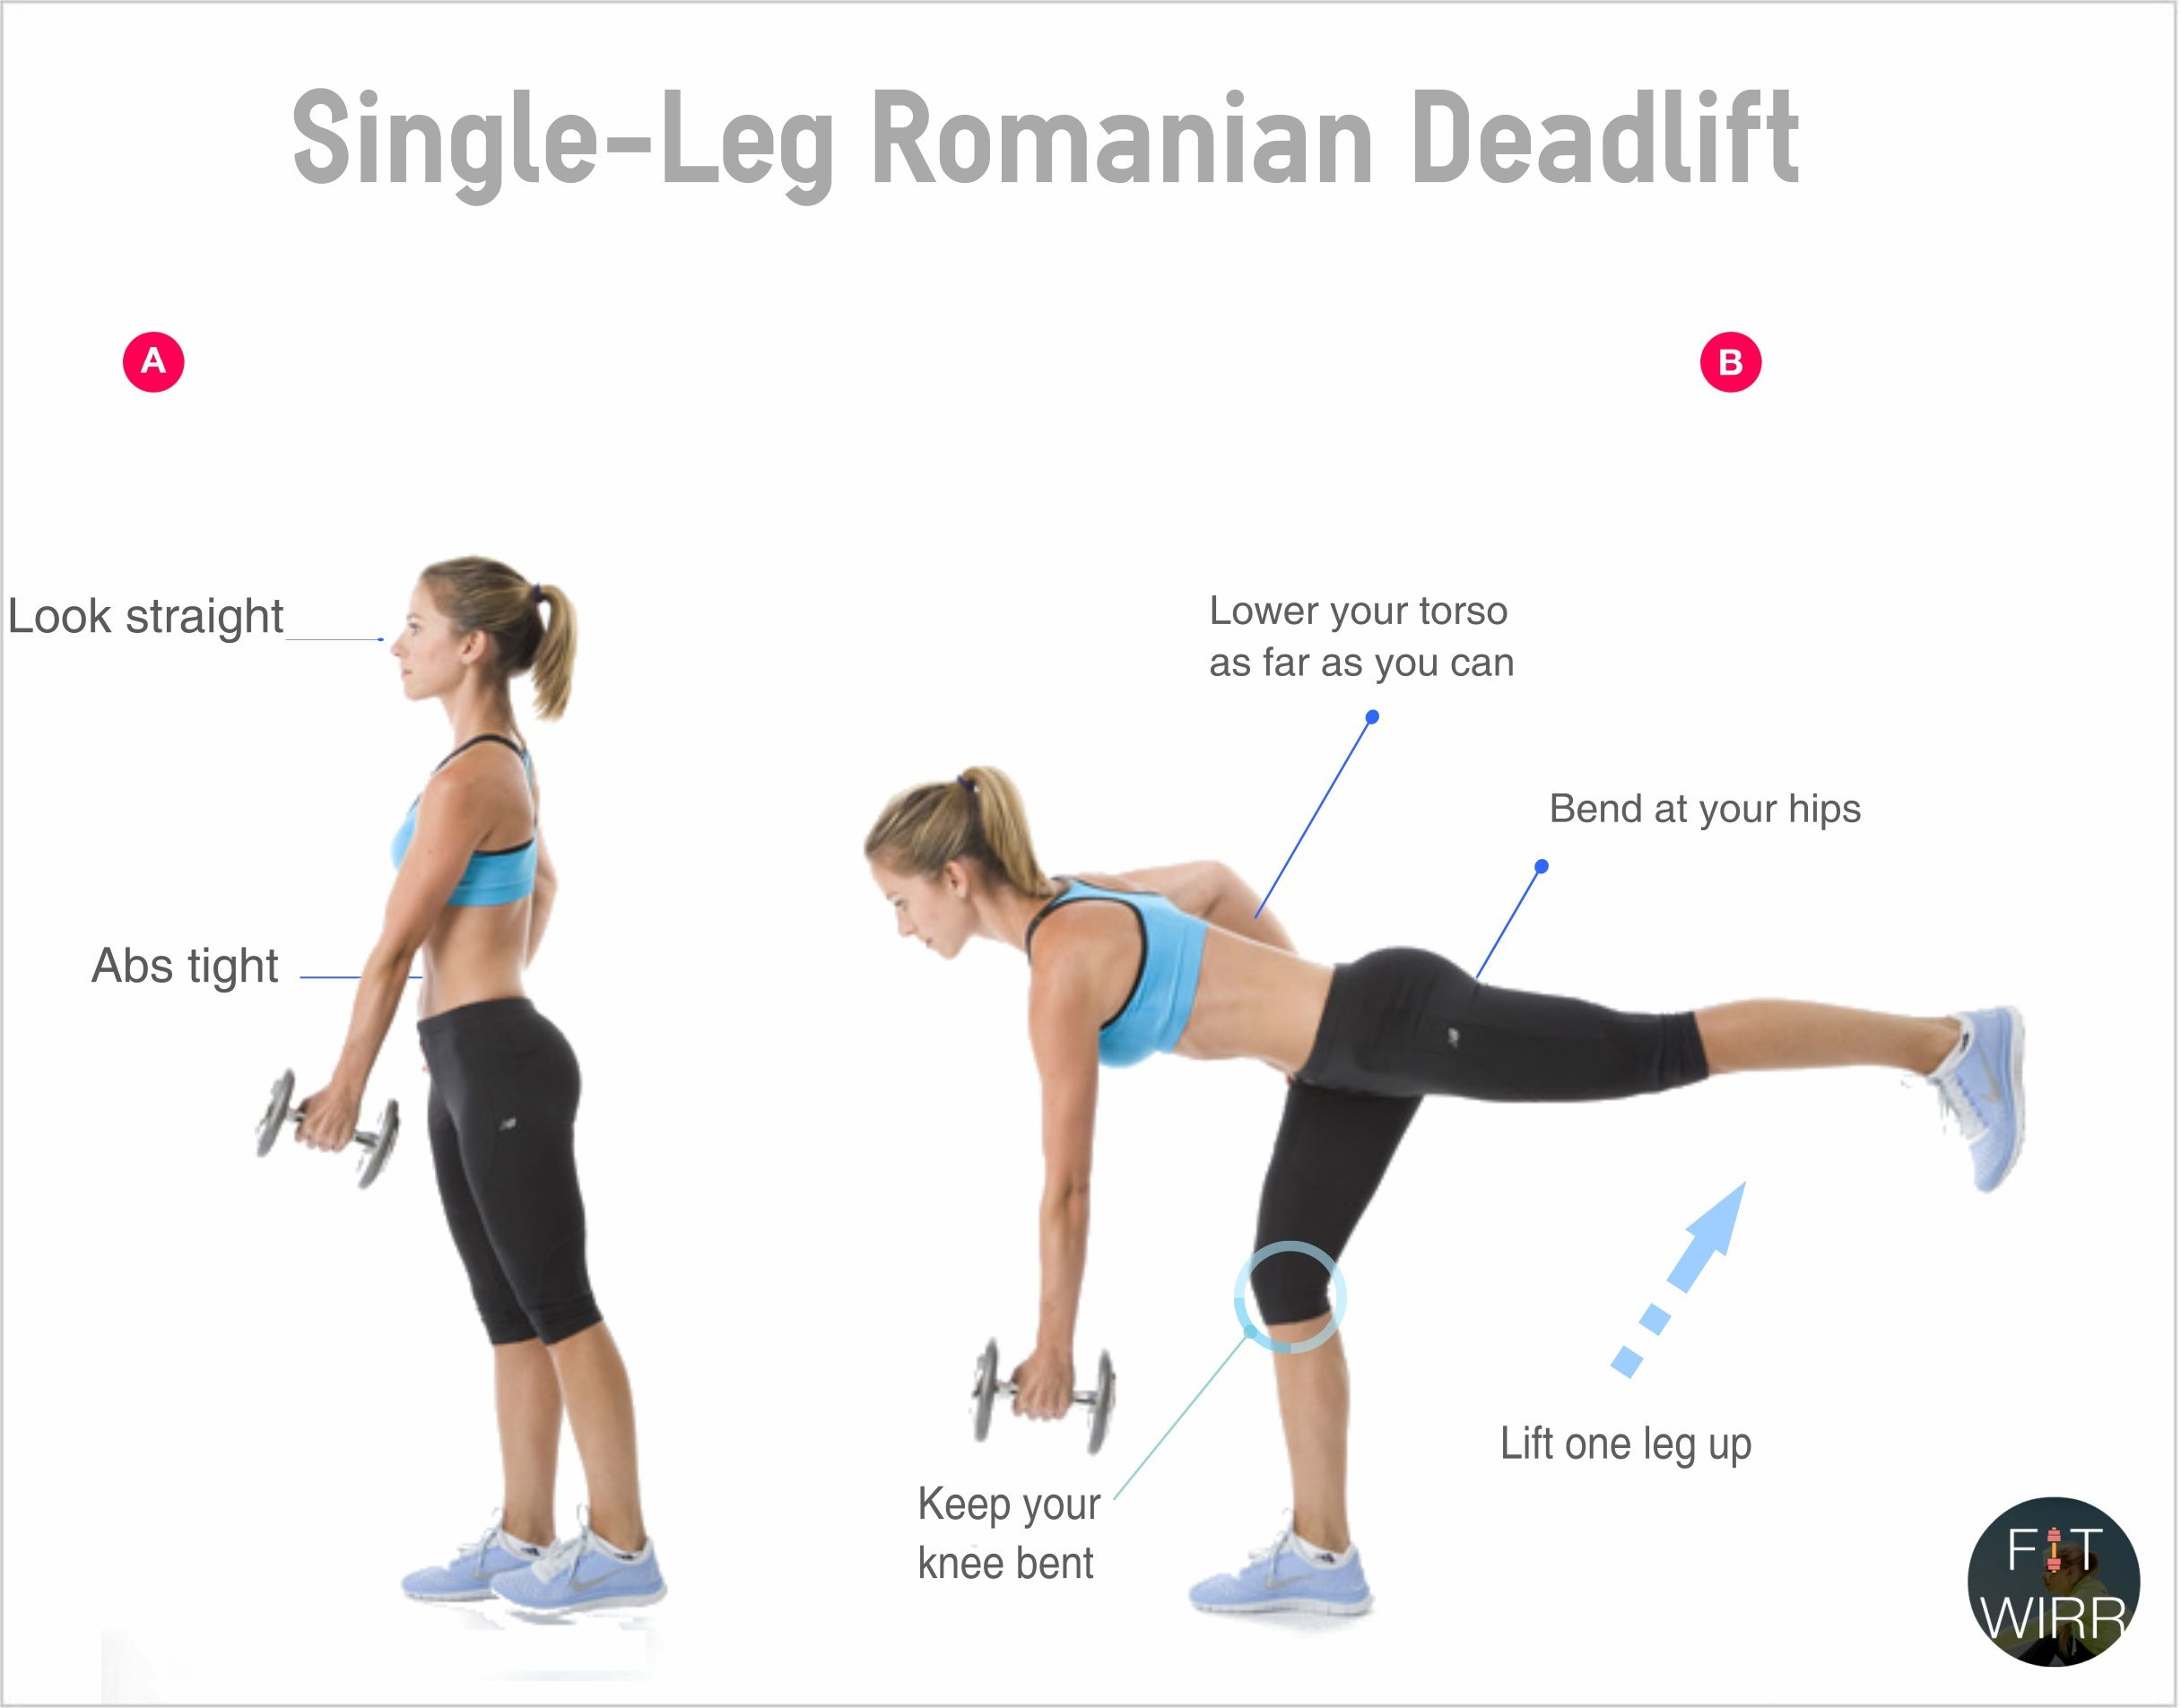 single leg rdl form  How to Do A Romanian DeadLift (RDL) on One Leg | Single leg ...